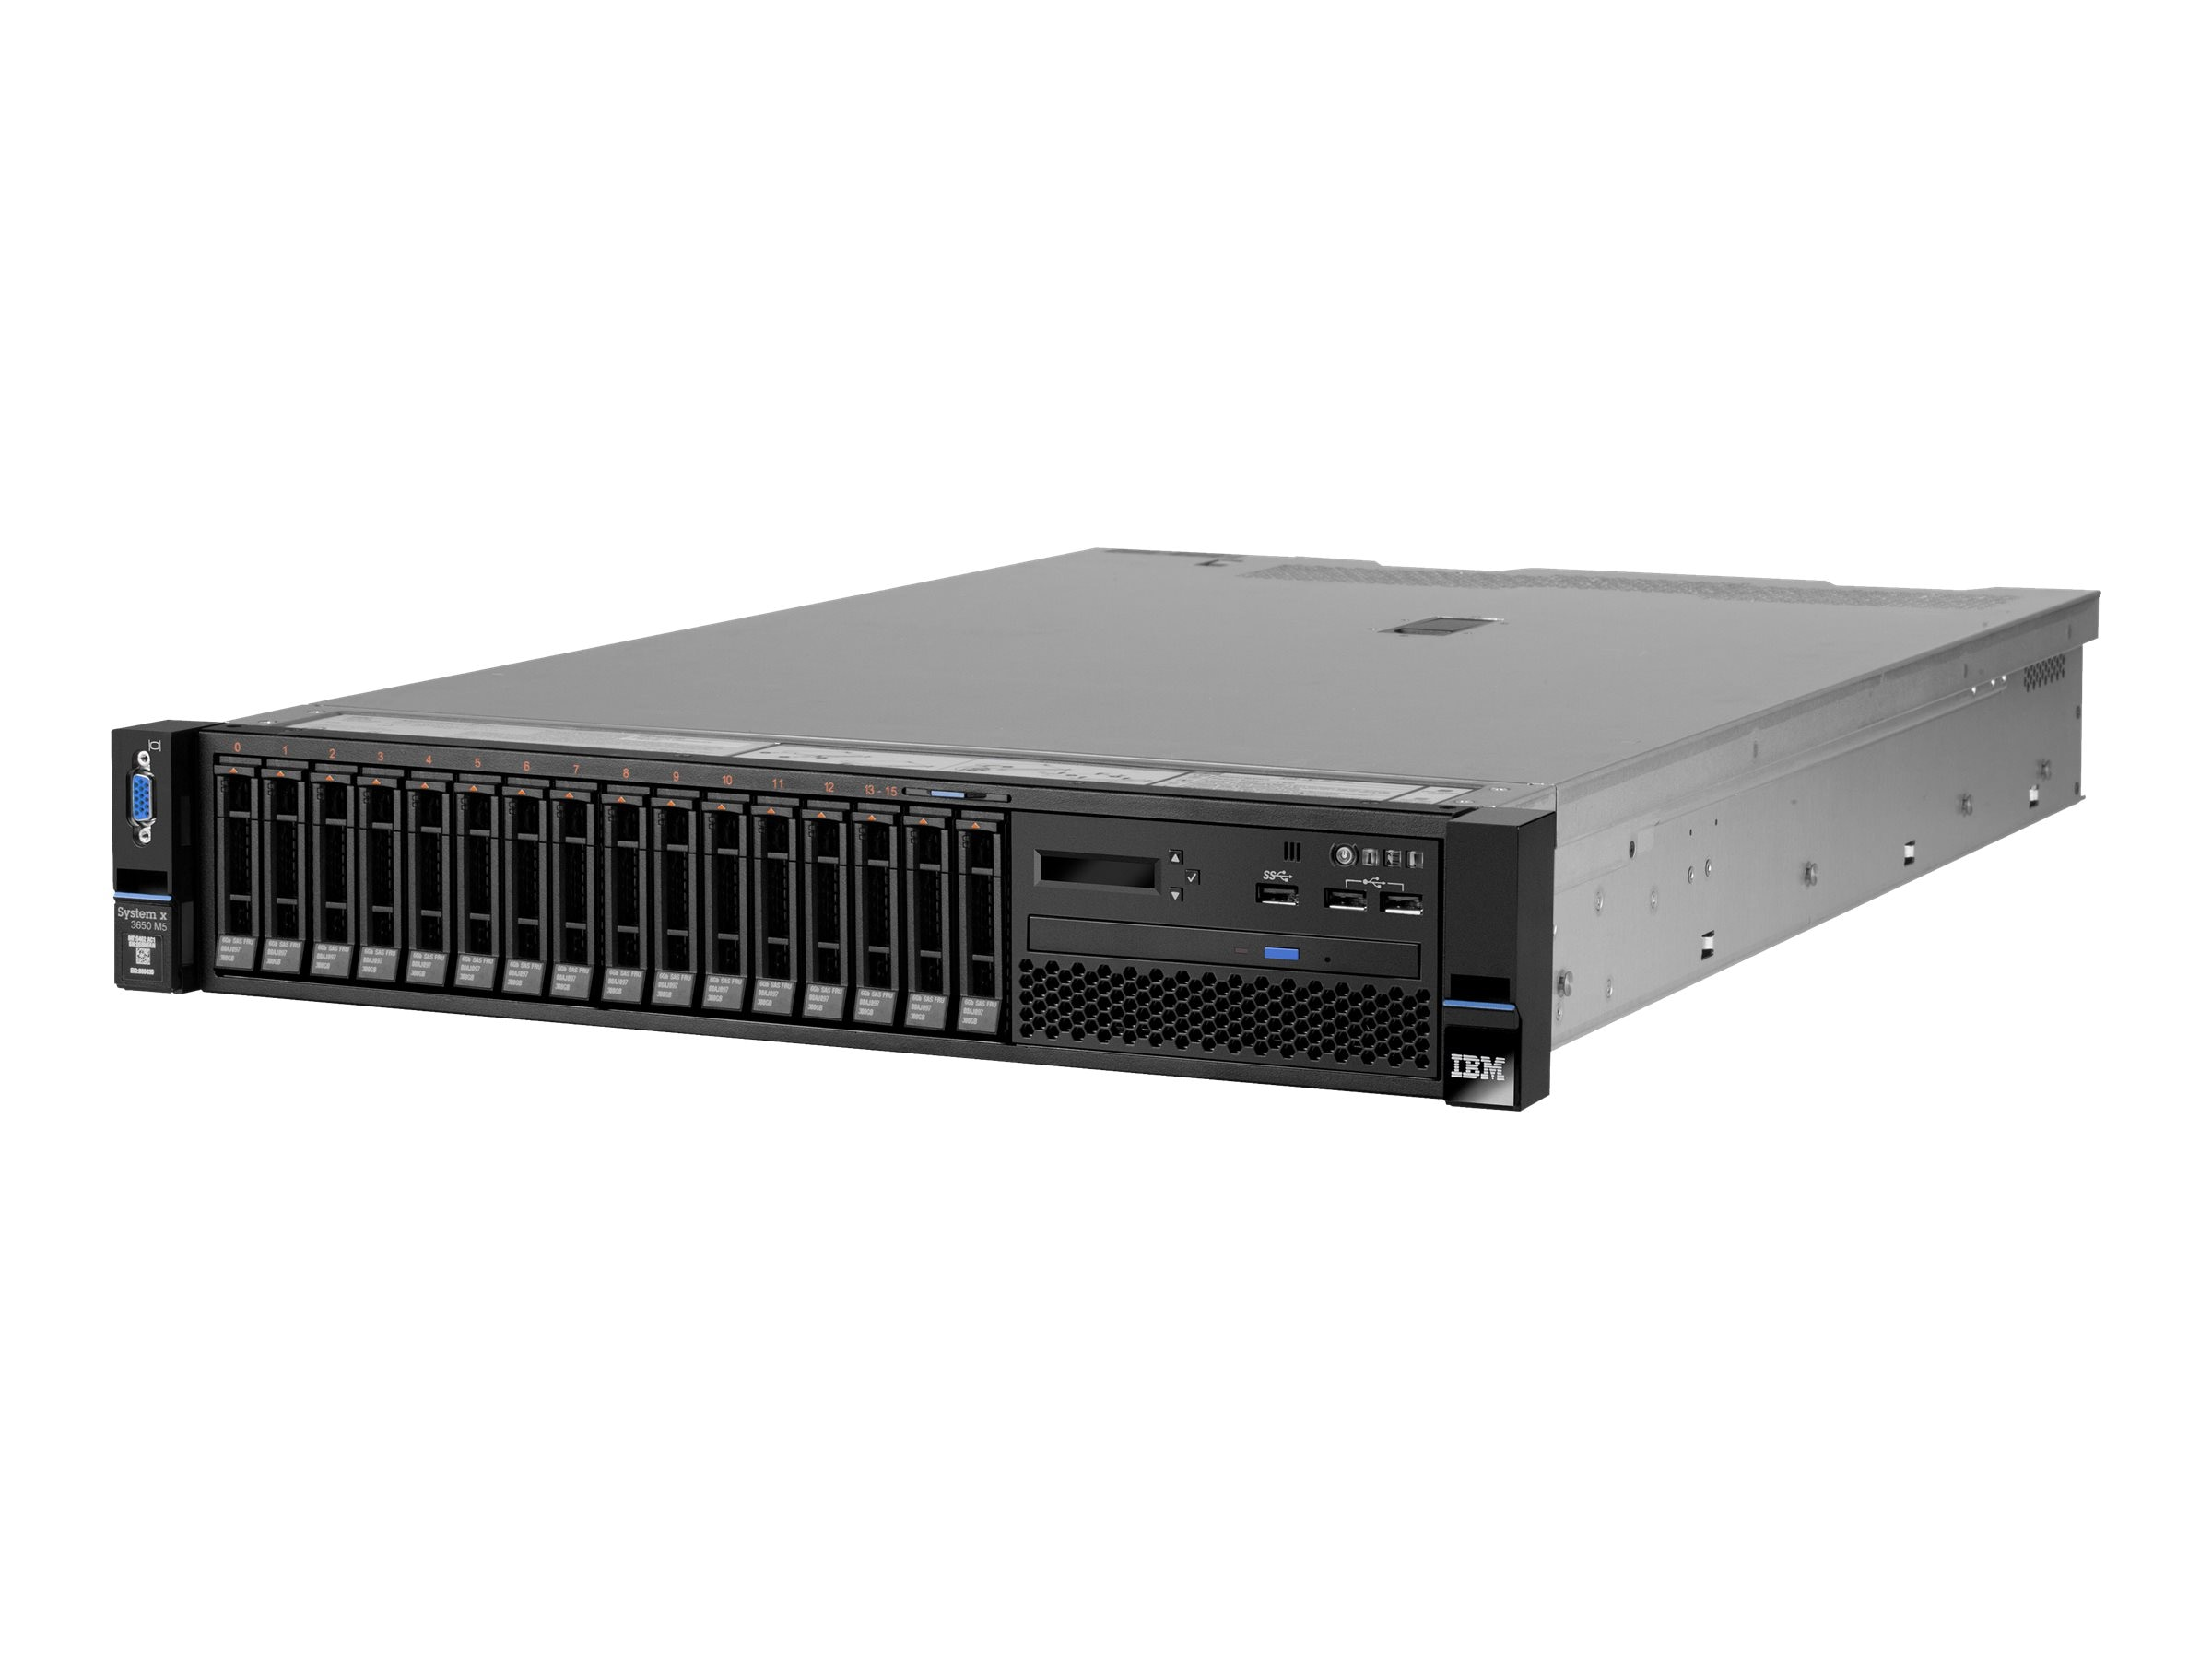 IBM Express System x3650 M5 Intel 2.3GHz Xeon